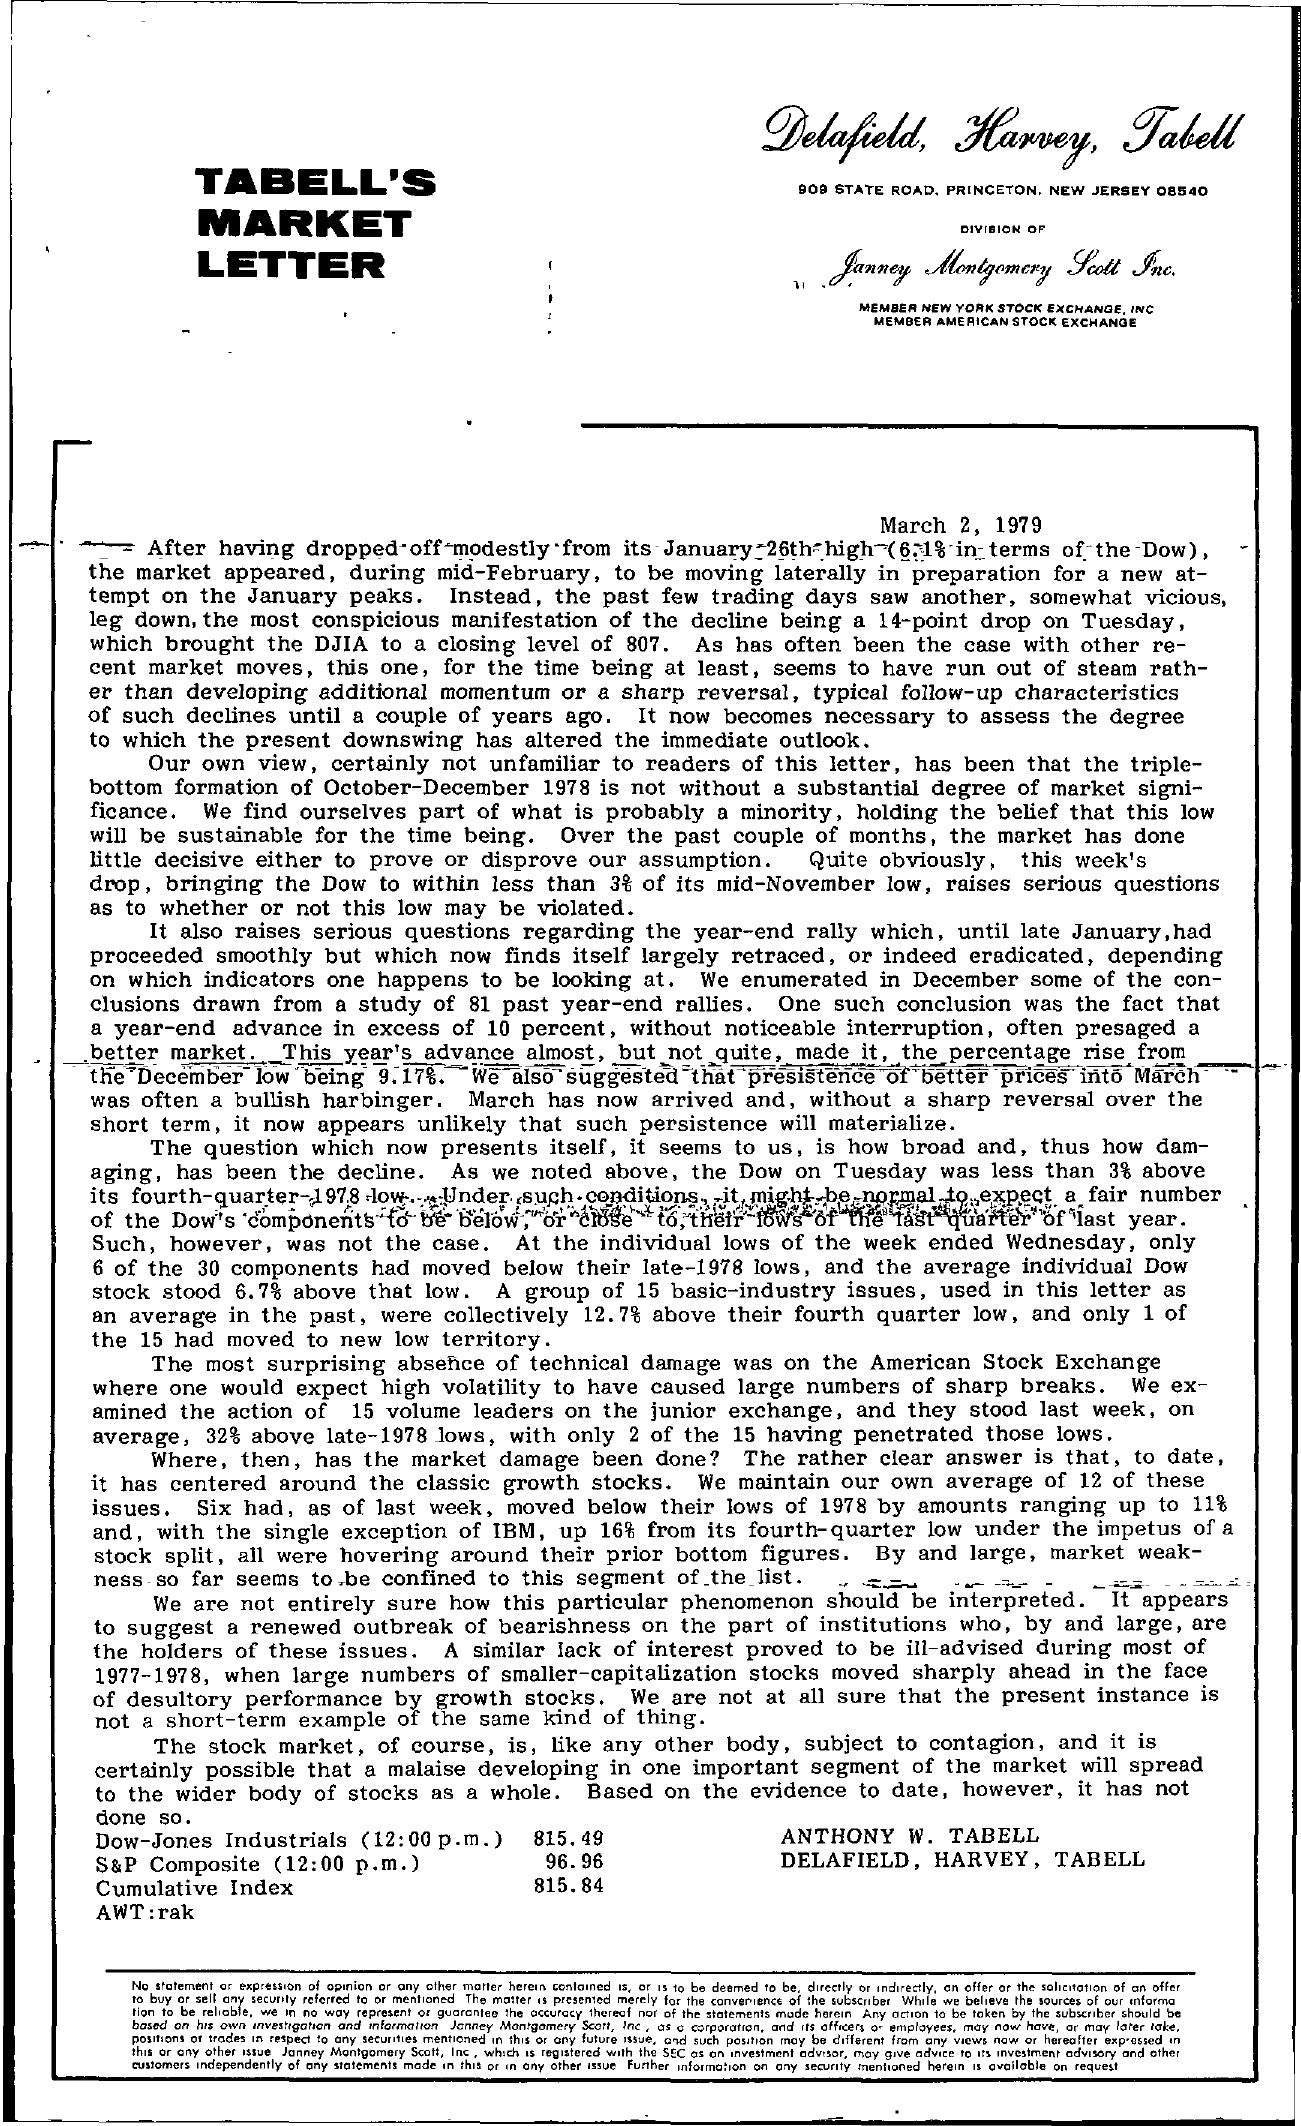 Tabell's Market Letter - March 02, 1979